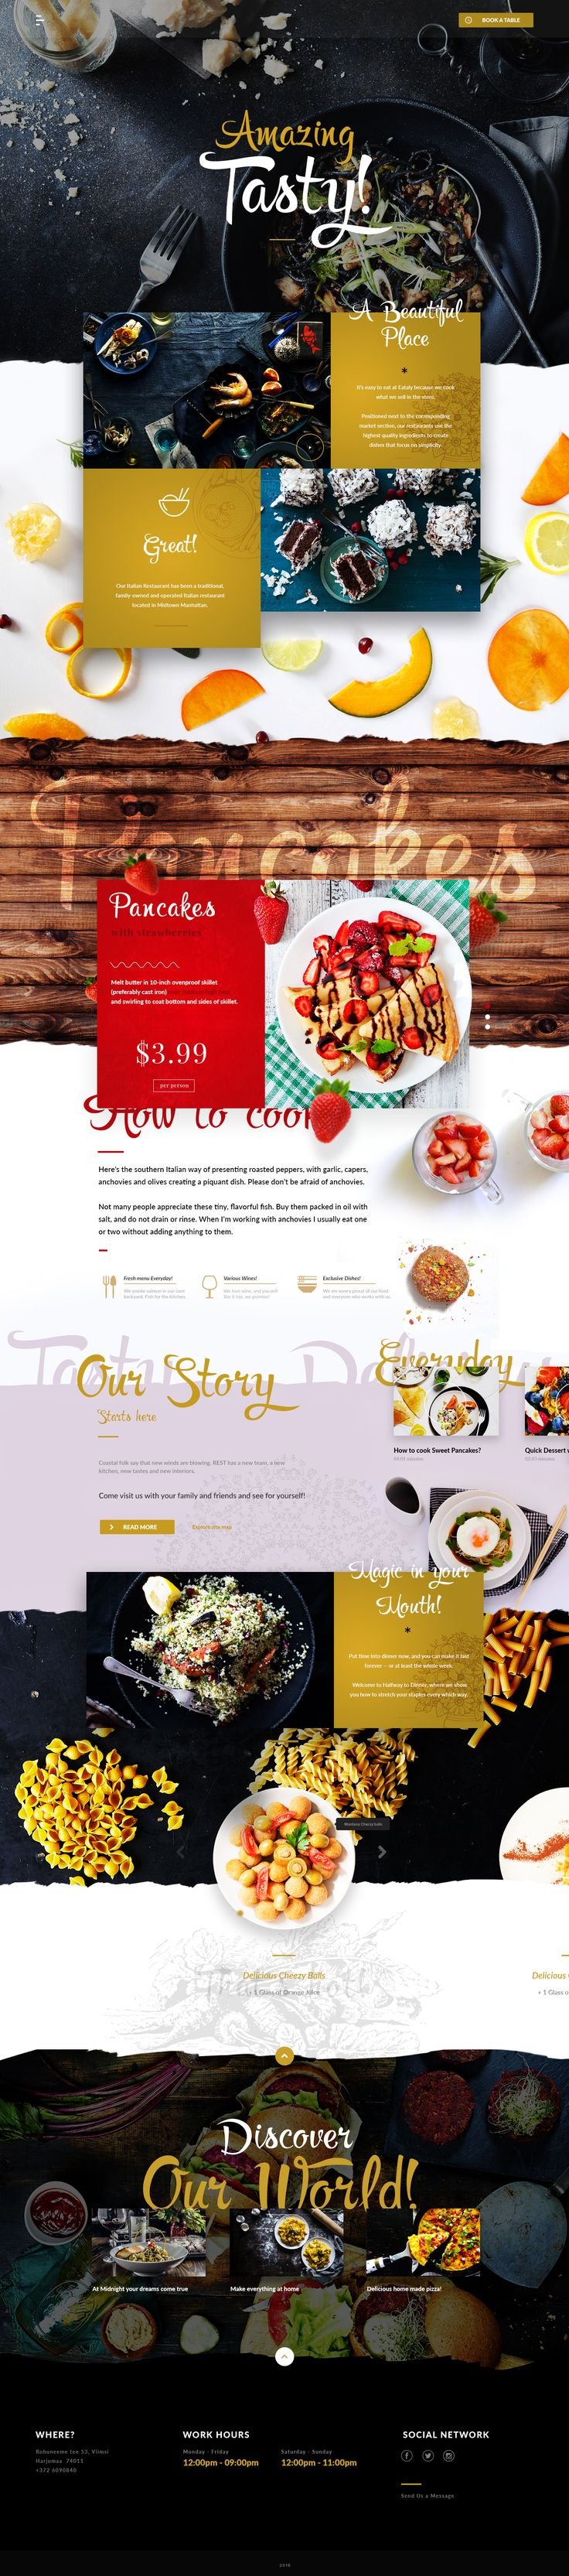 Great Website Design Ideas top website design ideas 3 mixed type Food Restaurant By Vitali Zakharoff Restaurant 2restaurant Website Designweb